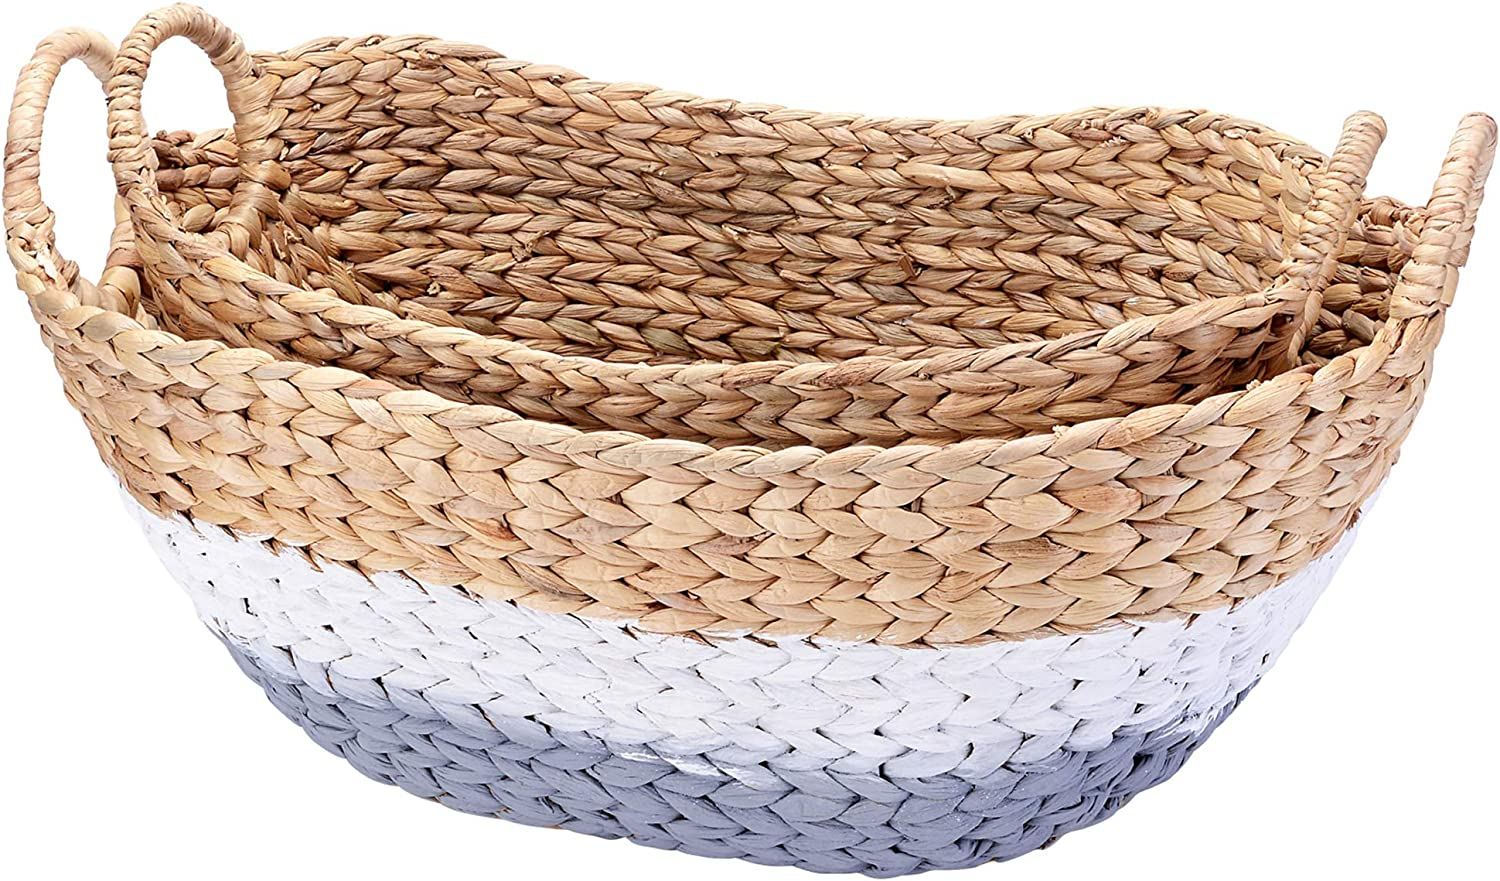 VILLACERA Tessa Handmade Wicker Water Hyacinth Oval Nesting Baskets in Gray and White | 24 20-Inch Wide | Set of 2